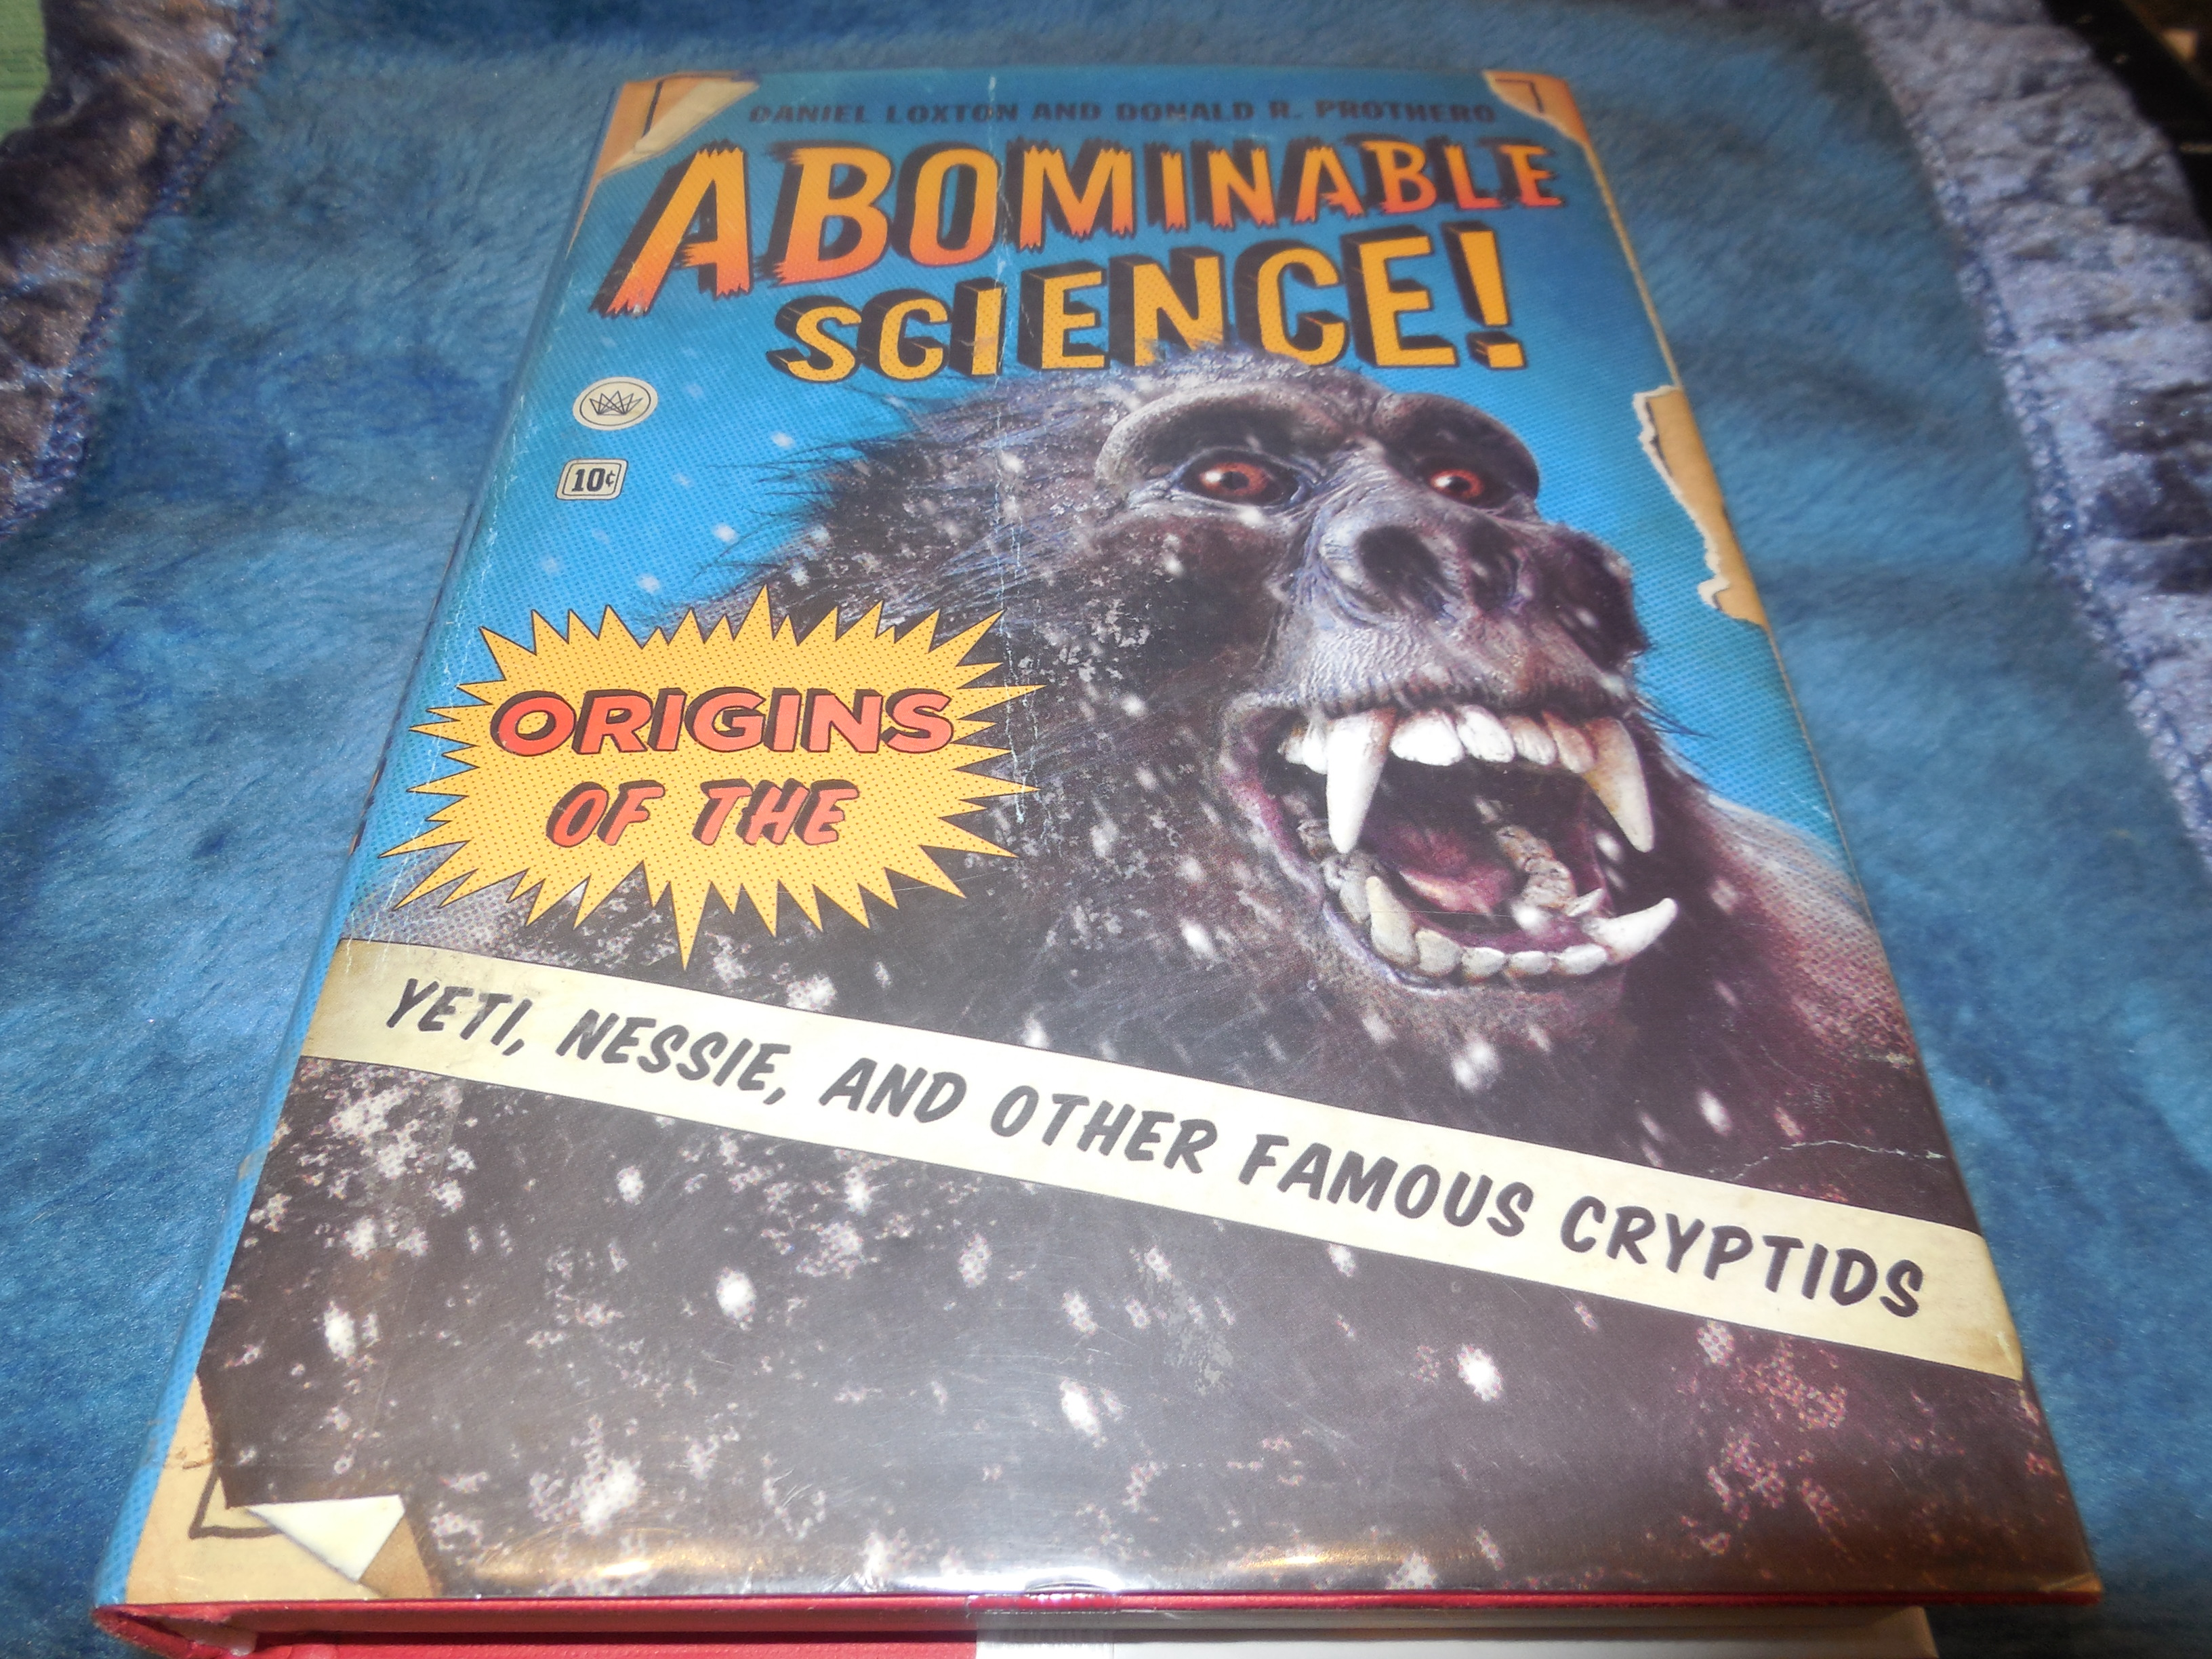 Image for Abominable Science!: Origins of the Yeti, Nessie, and Other Famous Cryptids